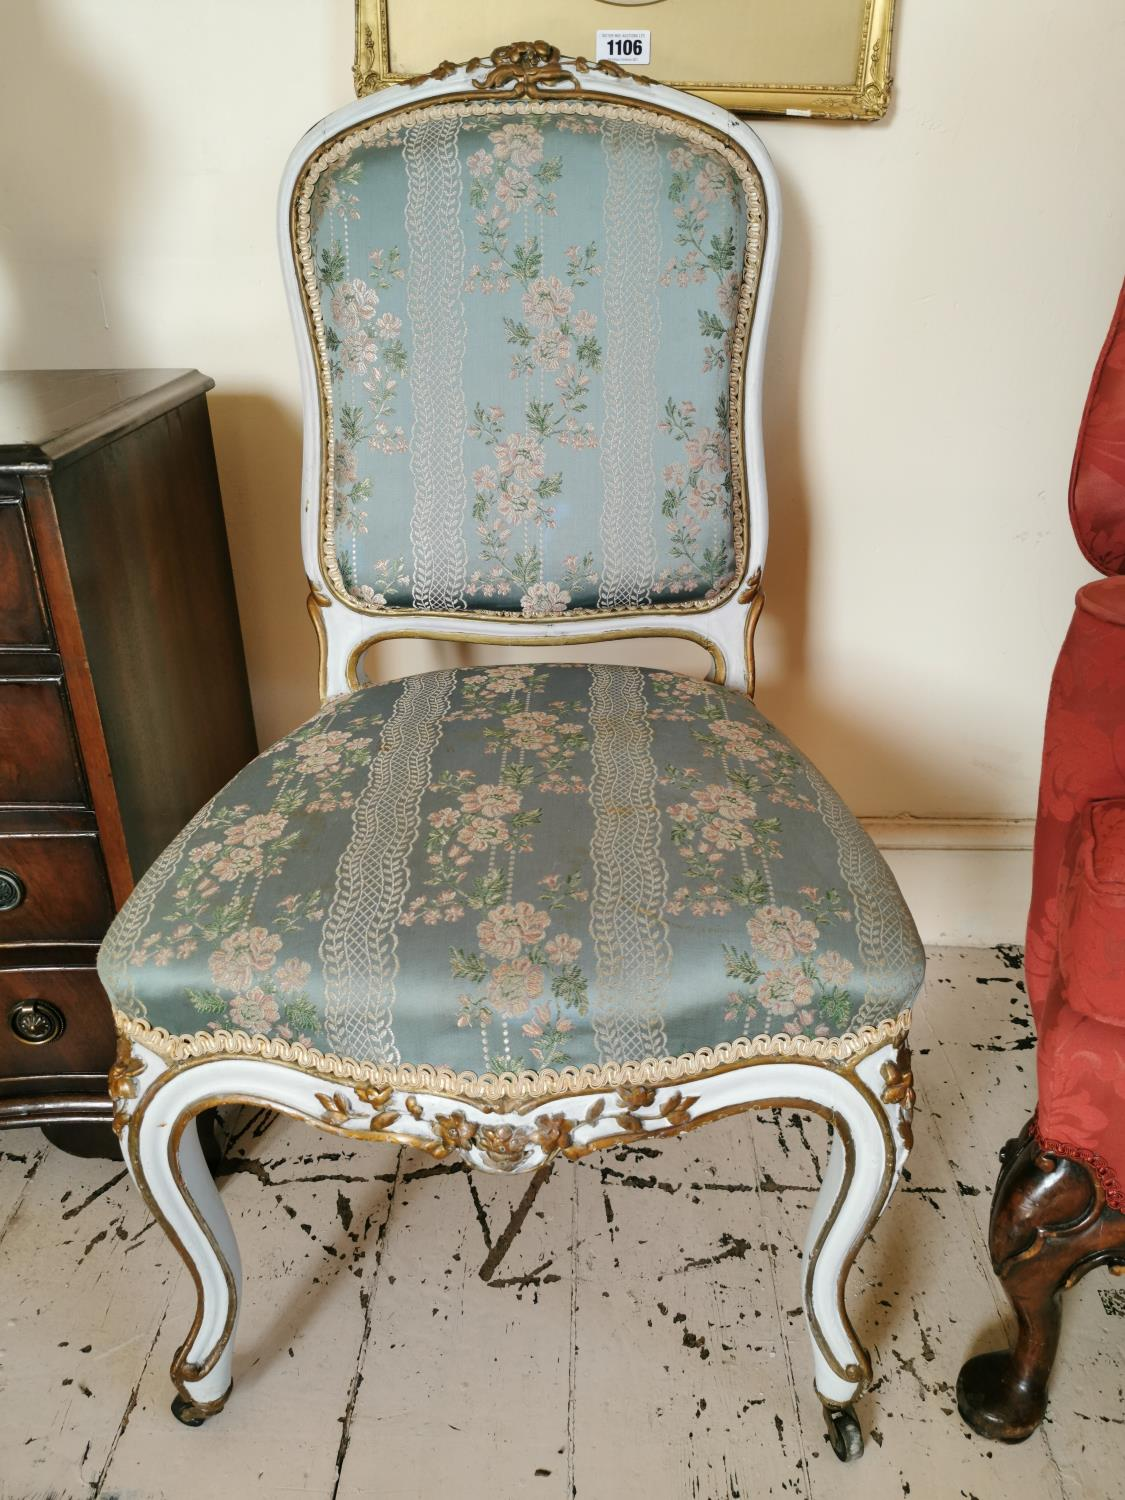 Pair of 19th C. giltwood French side chairs. - Image 2 of 3